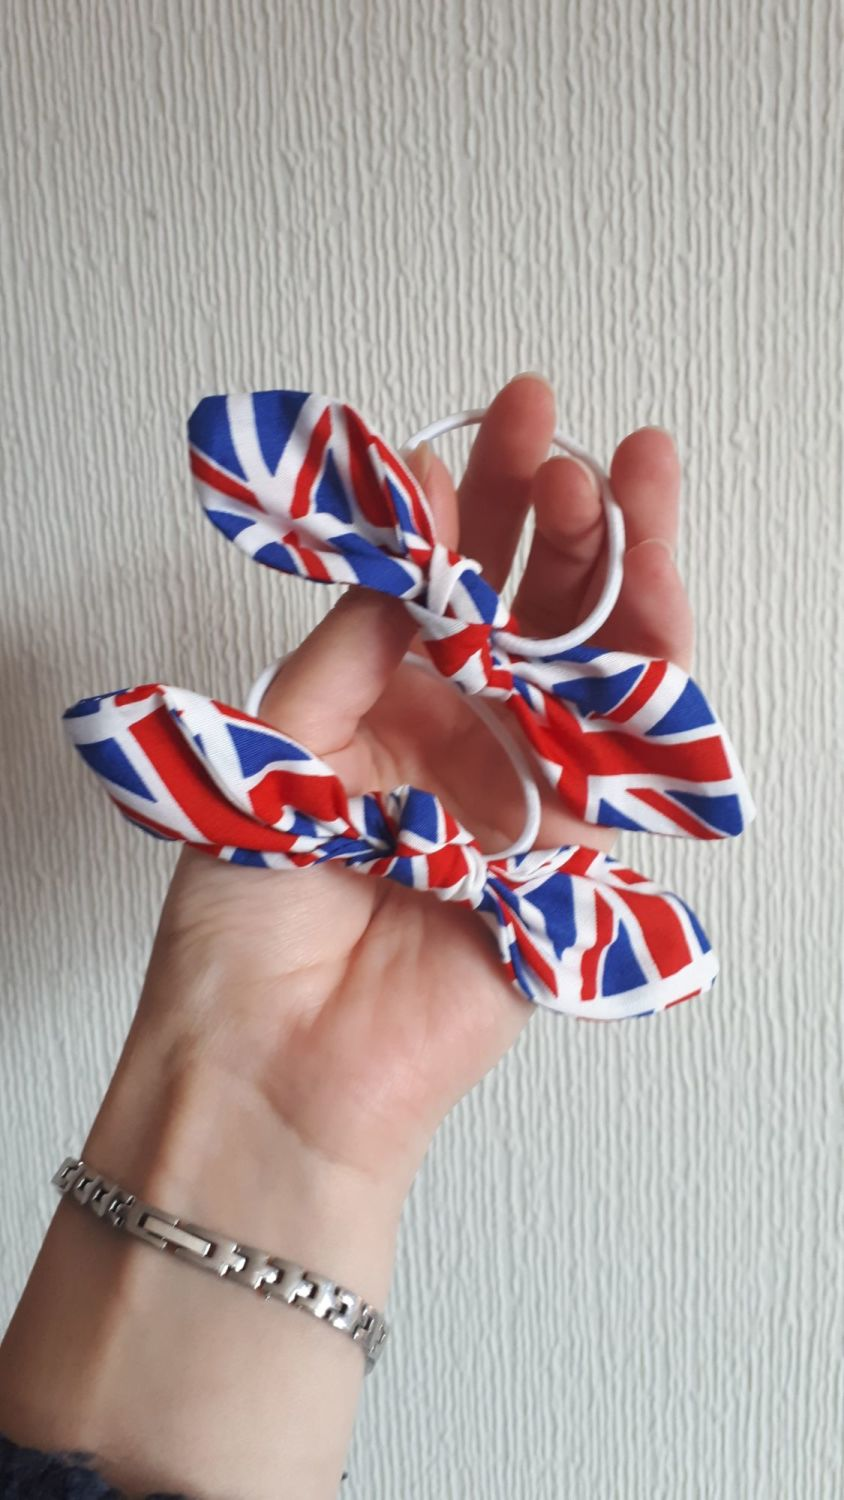 Hair tie - Union Jack